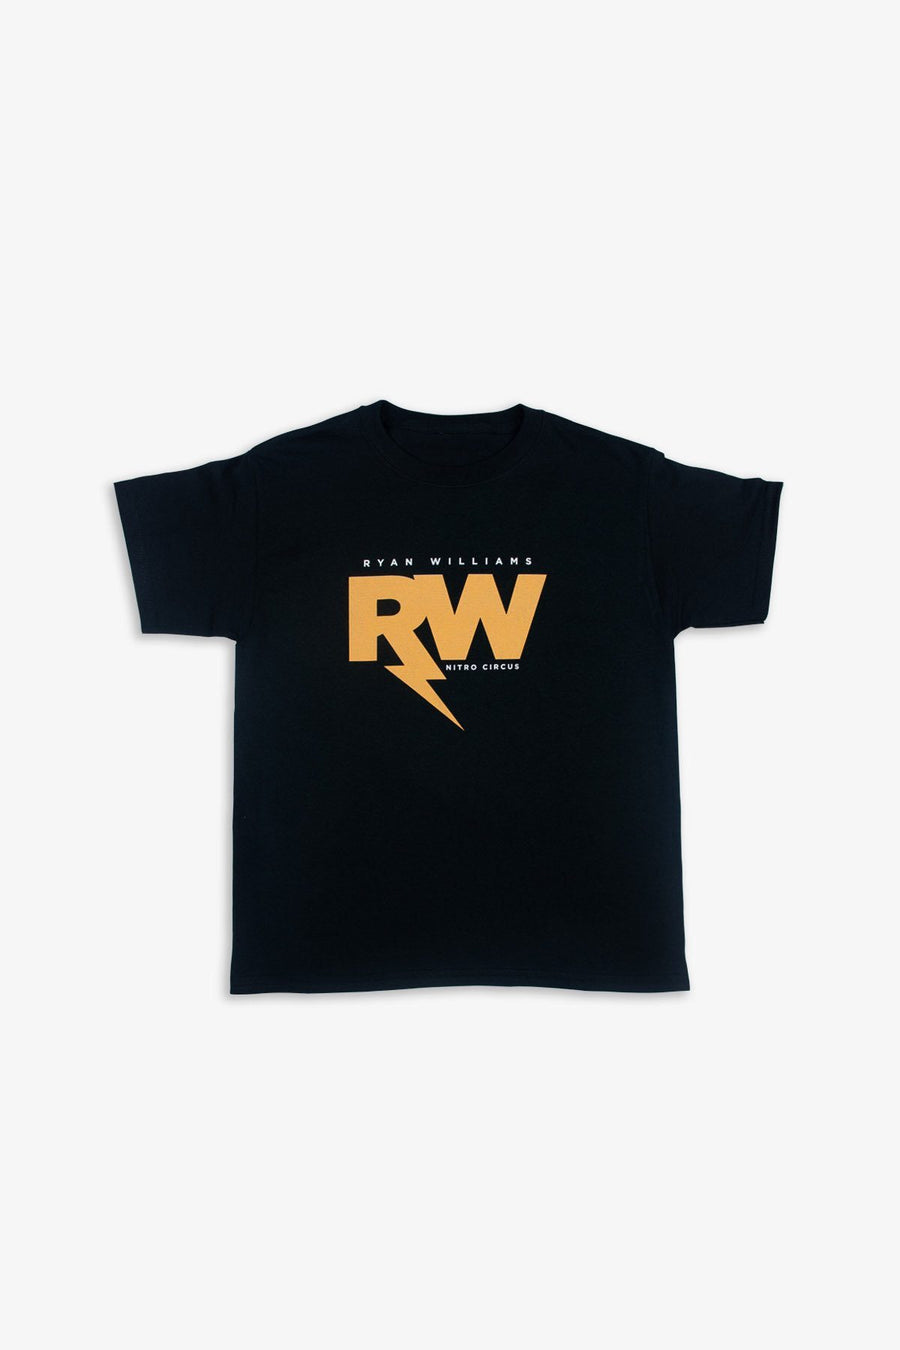 R-Willy Logo Kid's T-Shirt